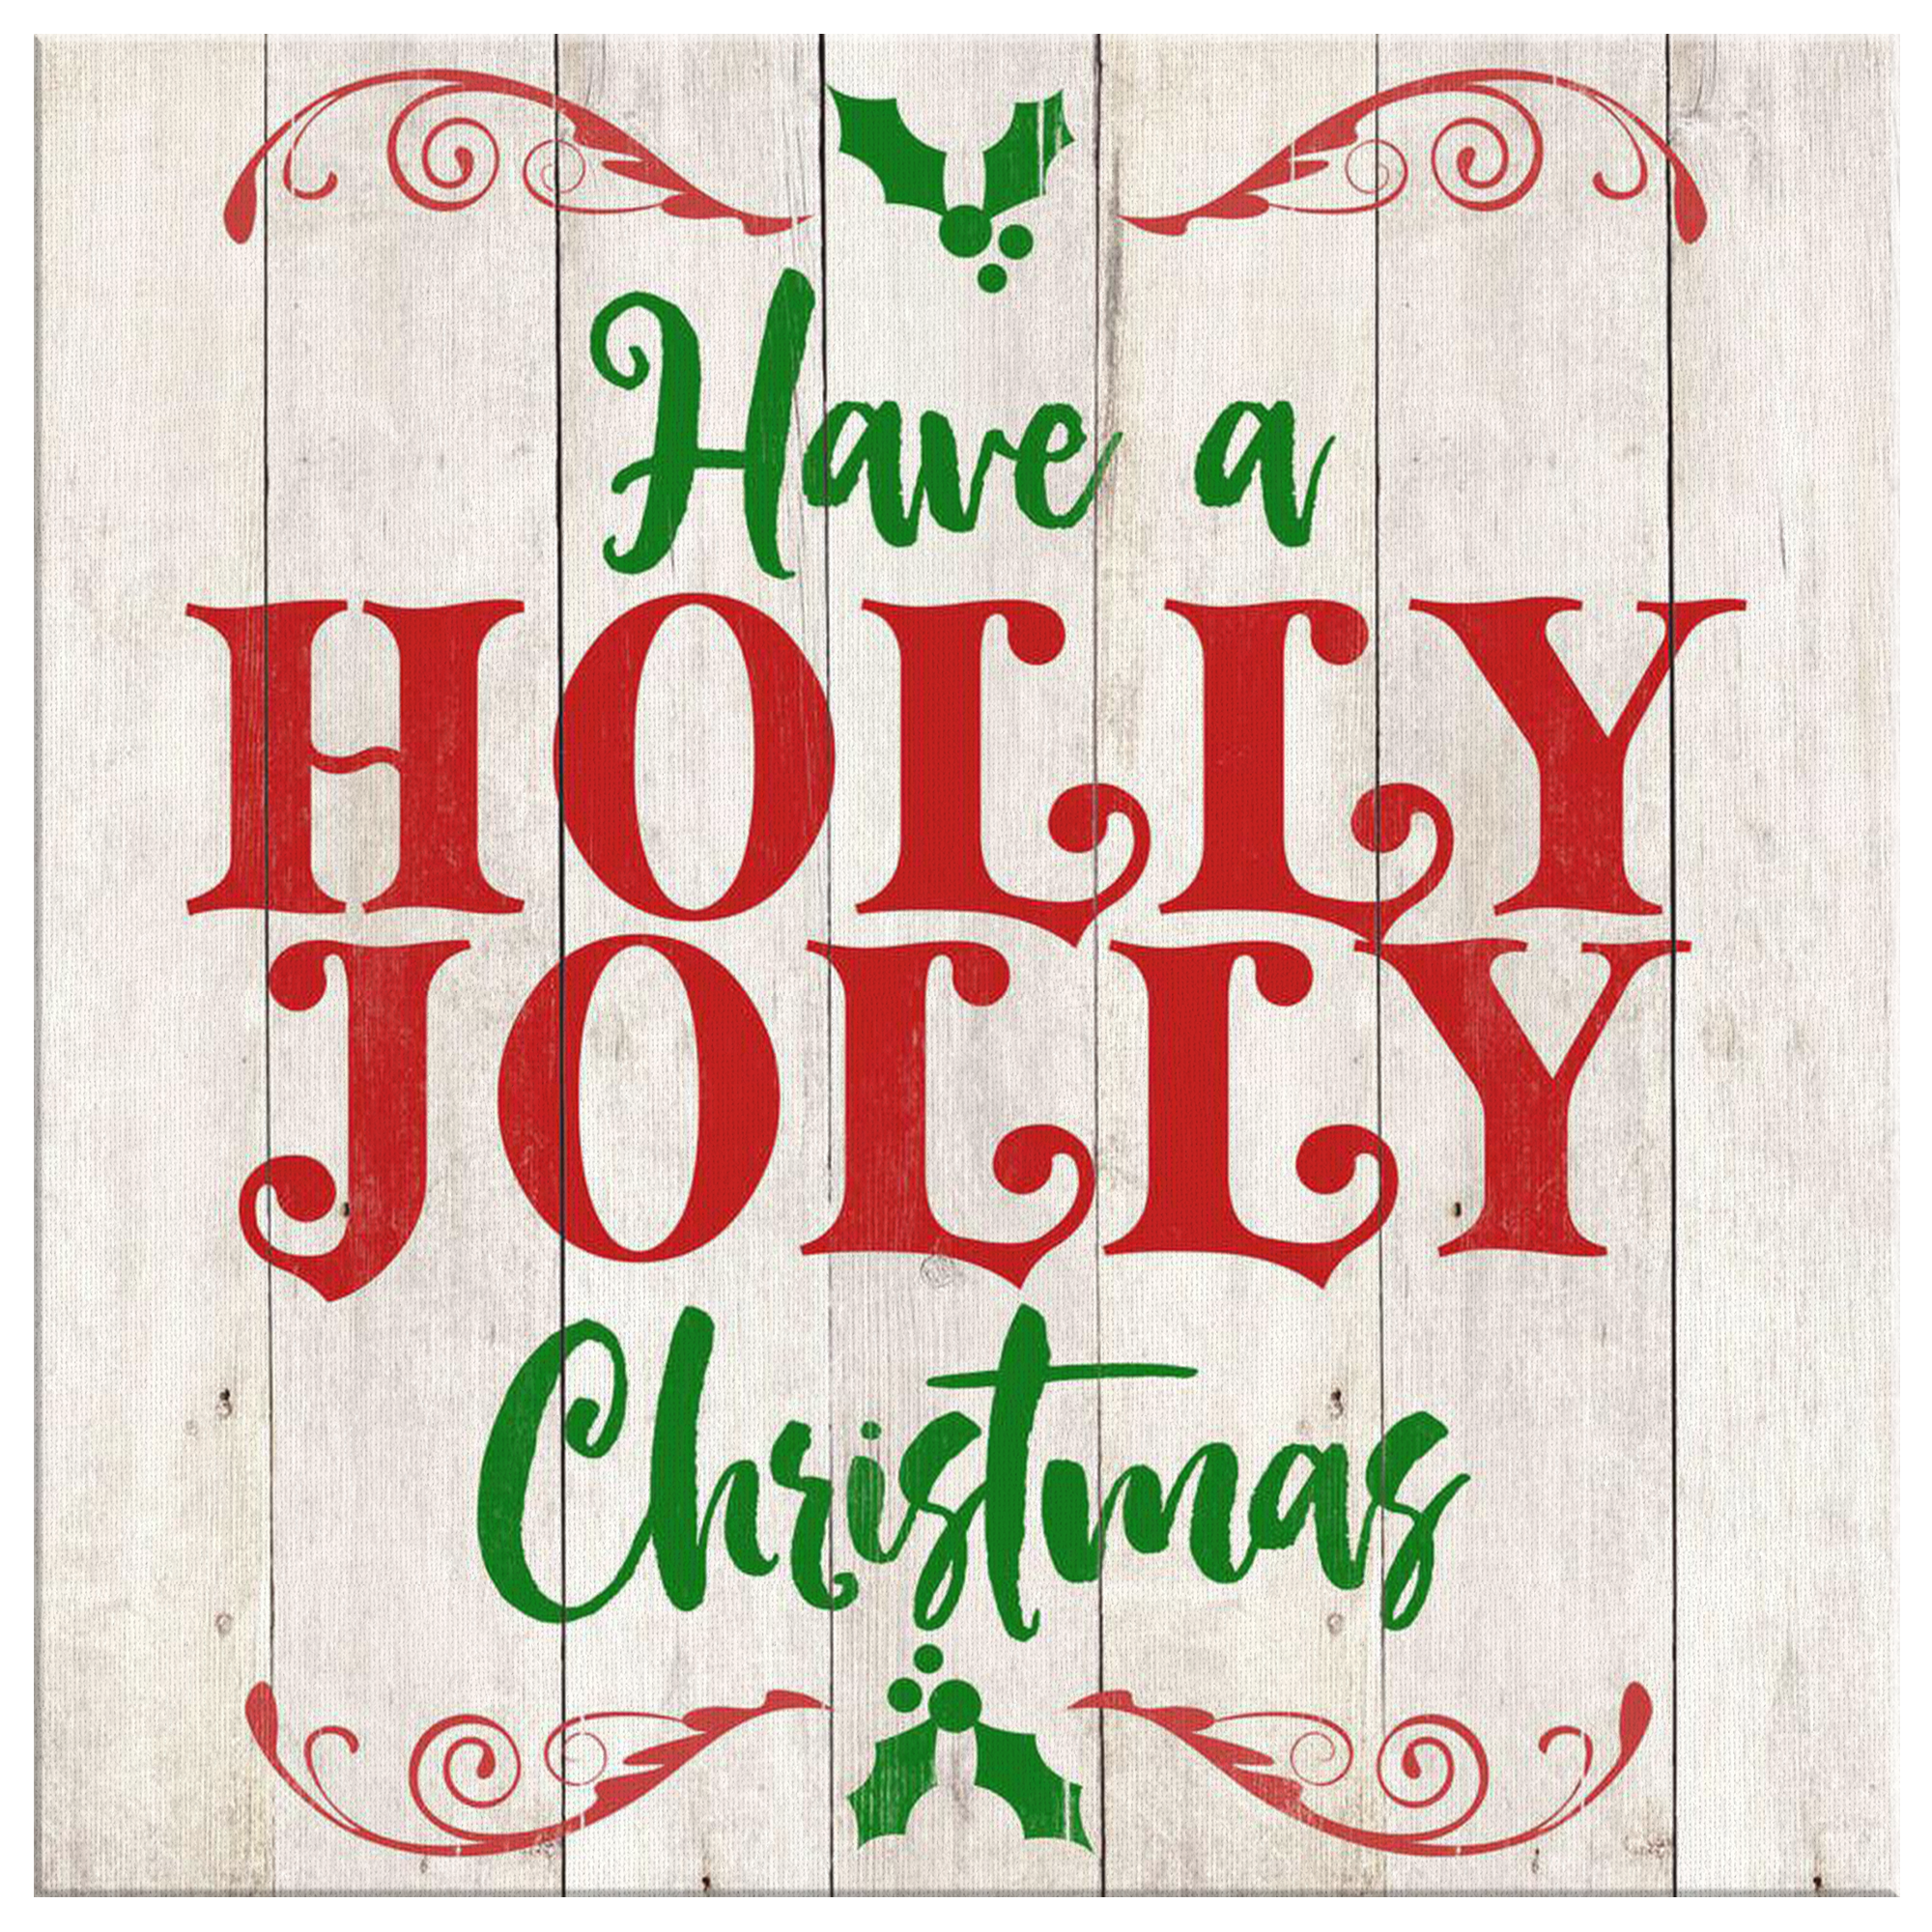 Holly Jolly Christmas.Holly Jolly Christmas Premium Canvas